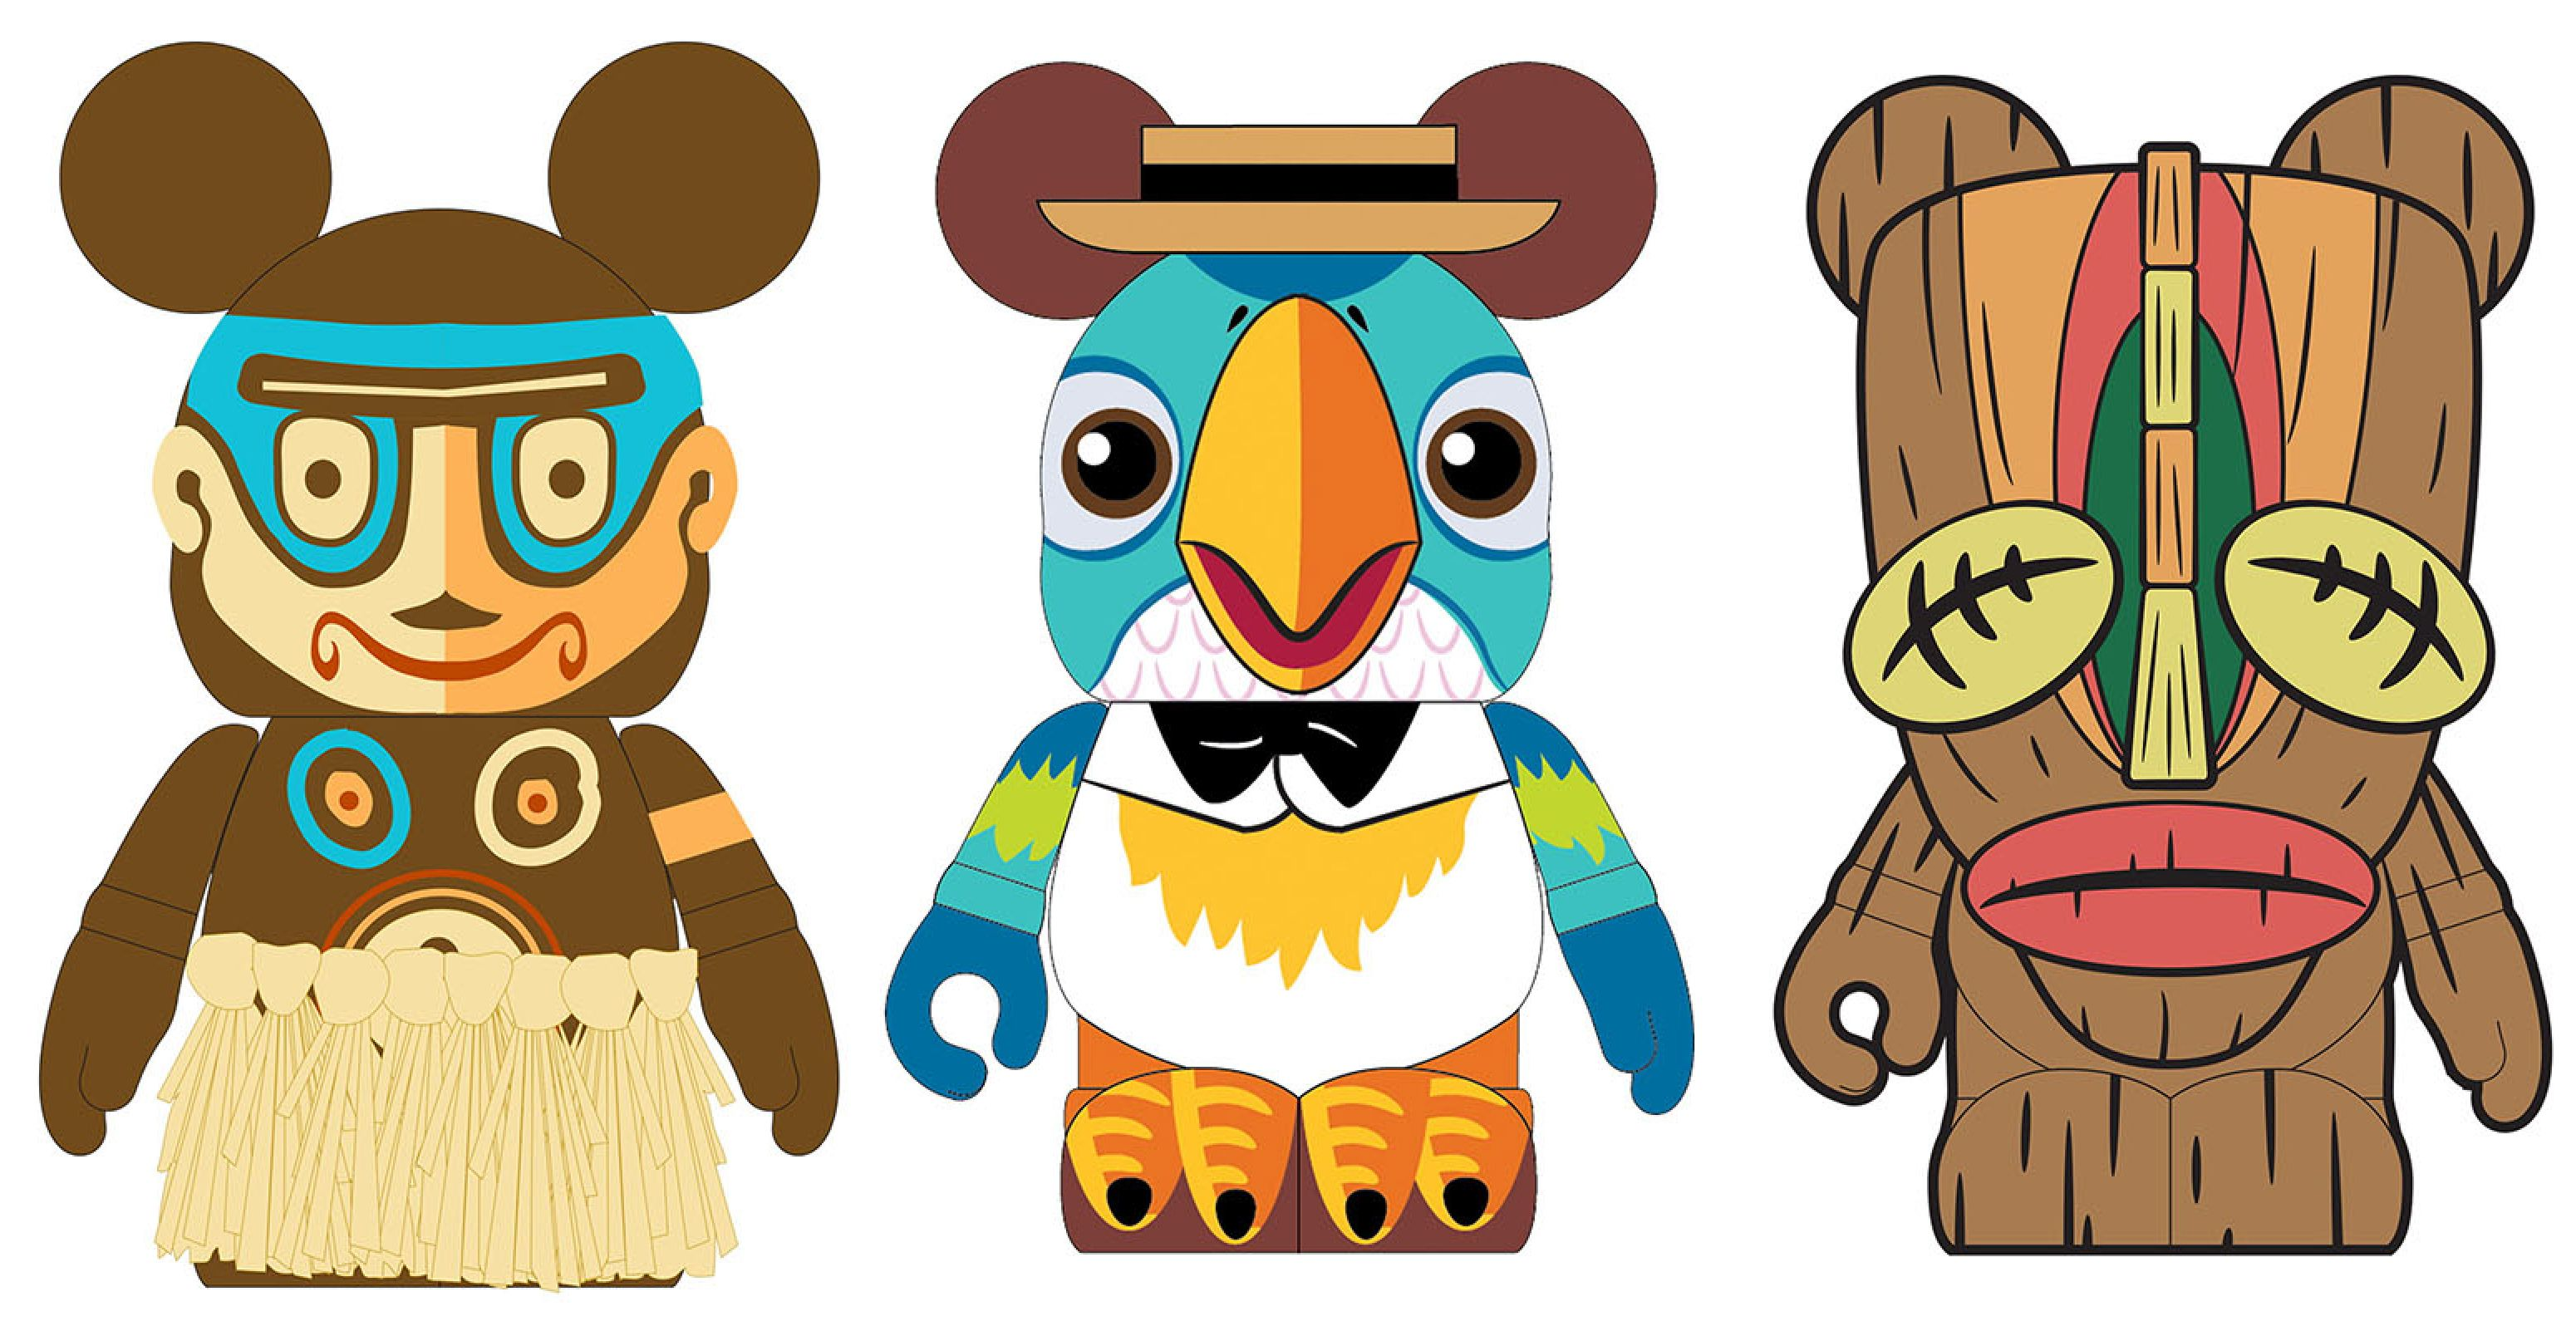 Tiki room clipart png free Pin by aburling on Tiki-Tropical | Tiki room, Tiki lounge ... png free